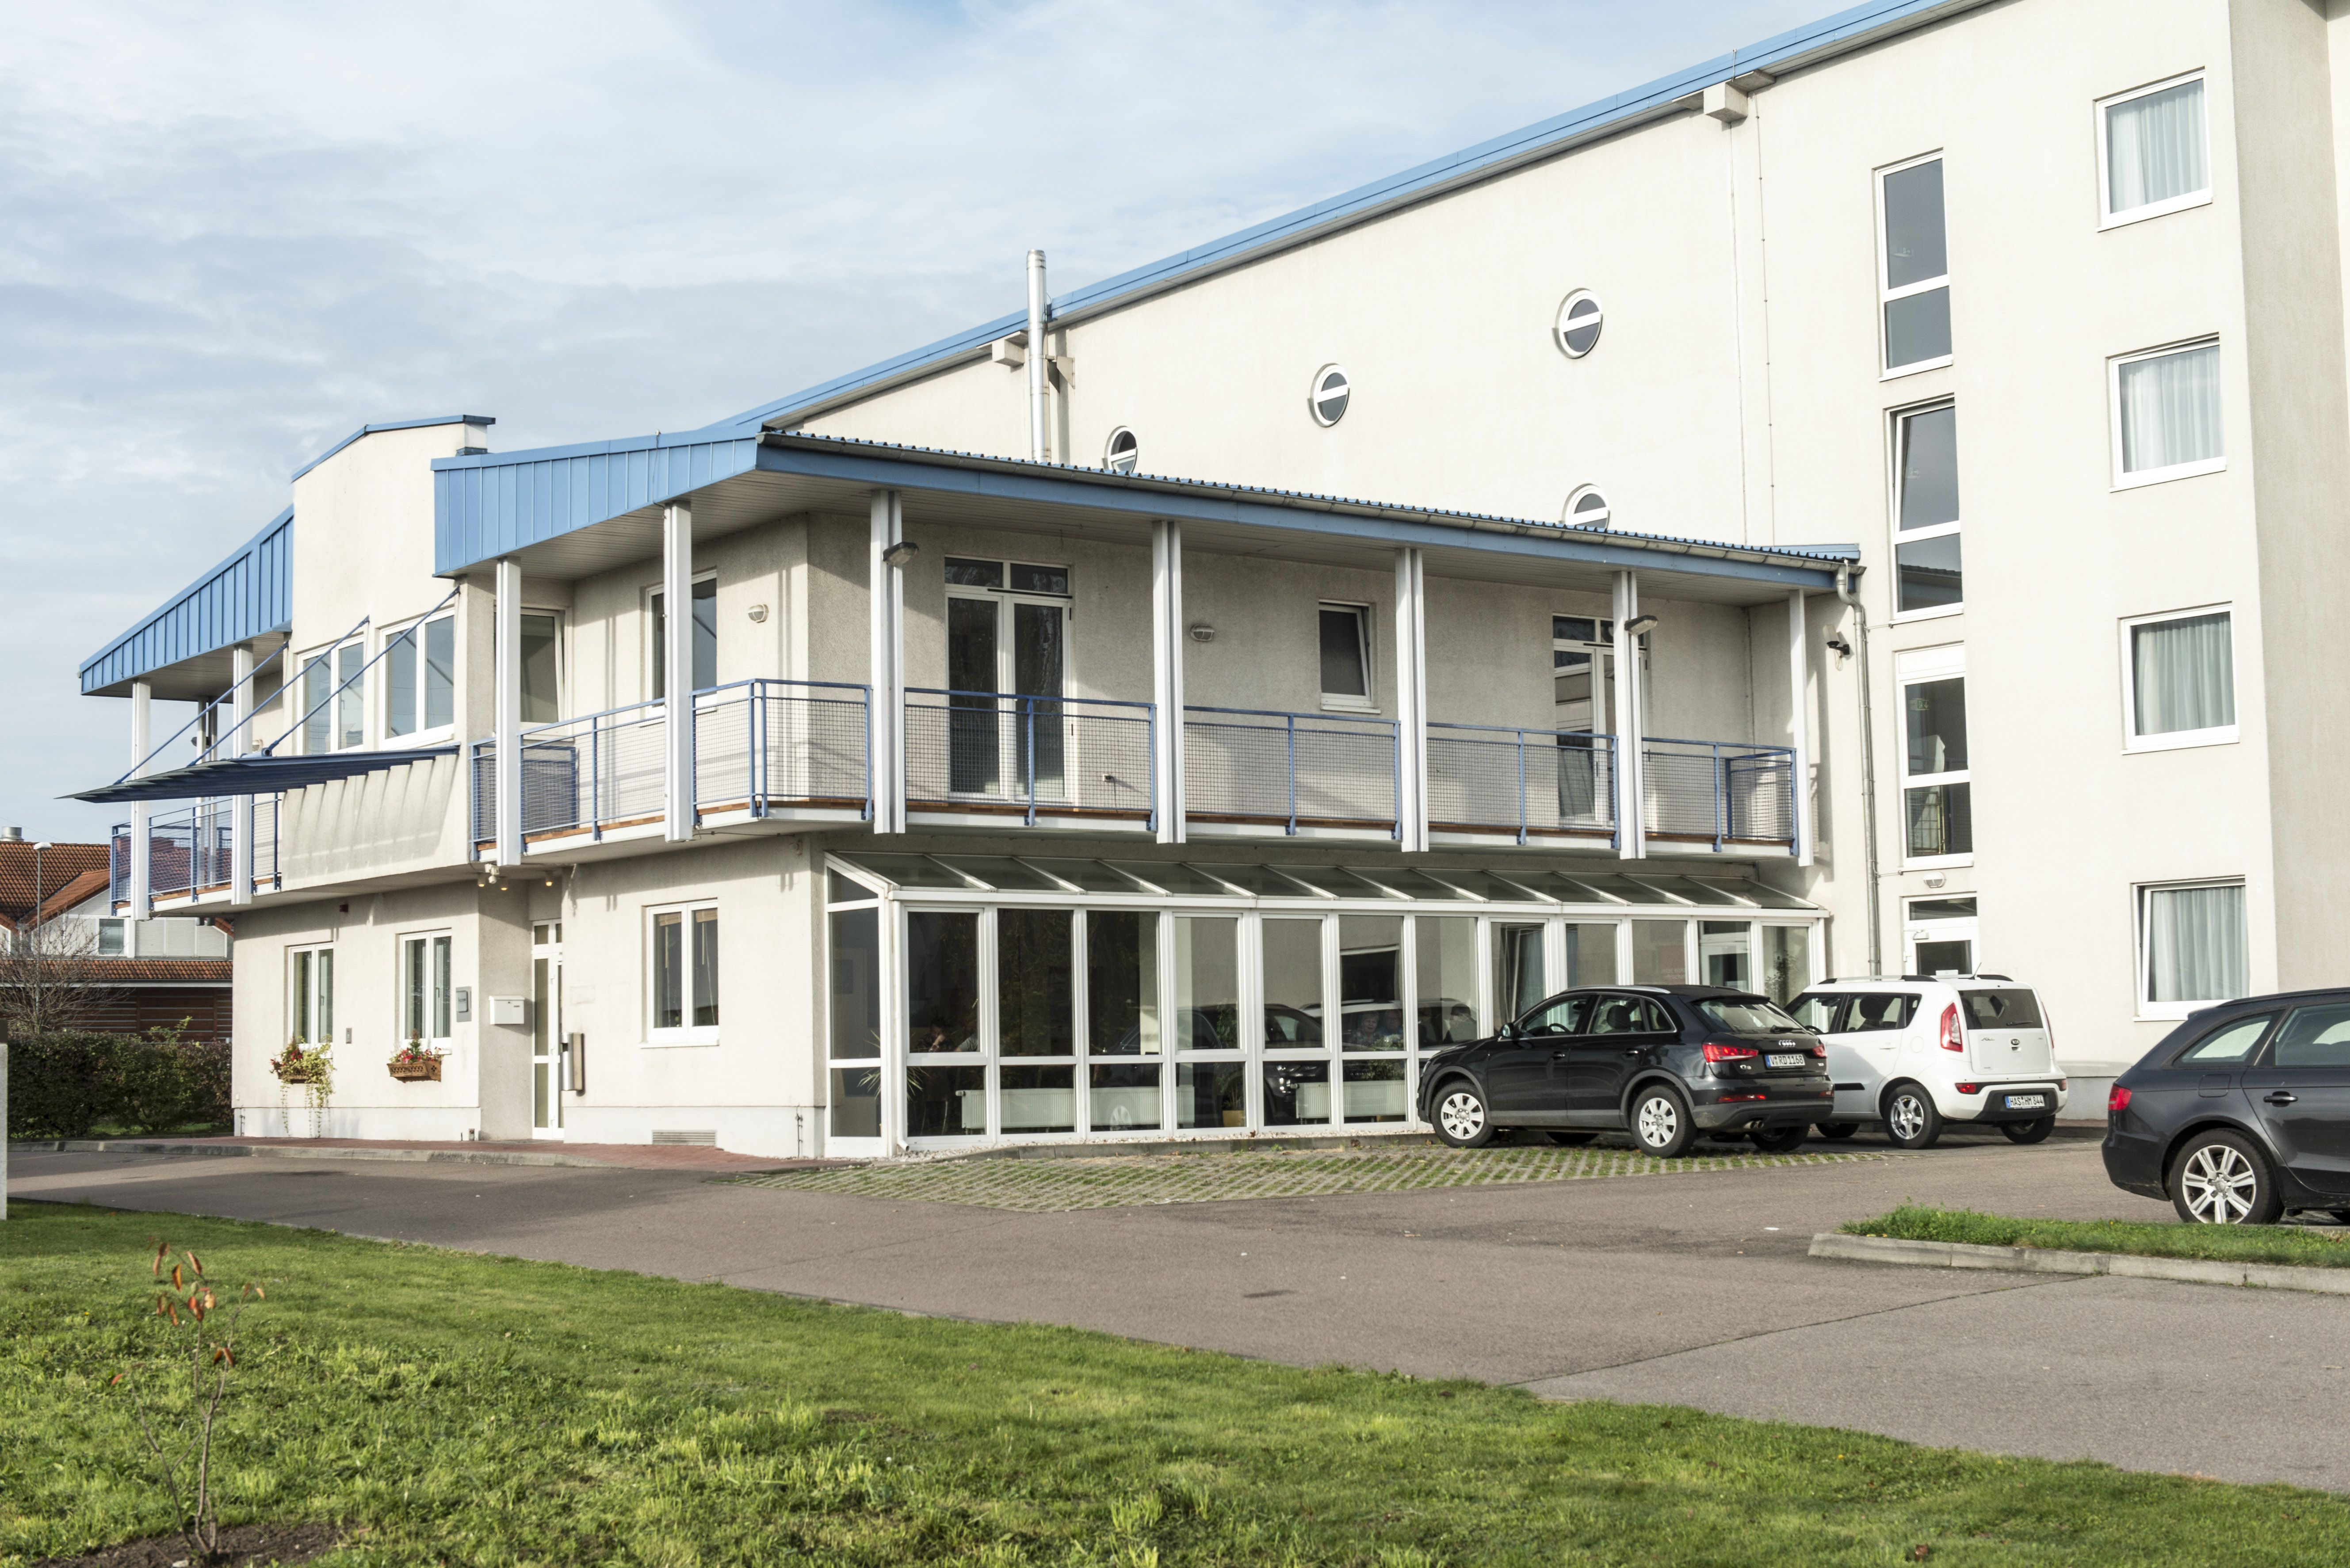 The ibis Hotel Leipzig NordOst is located on the